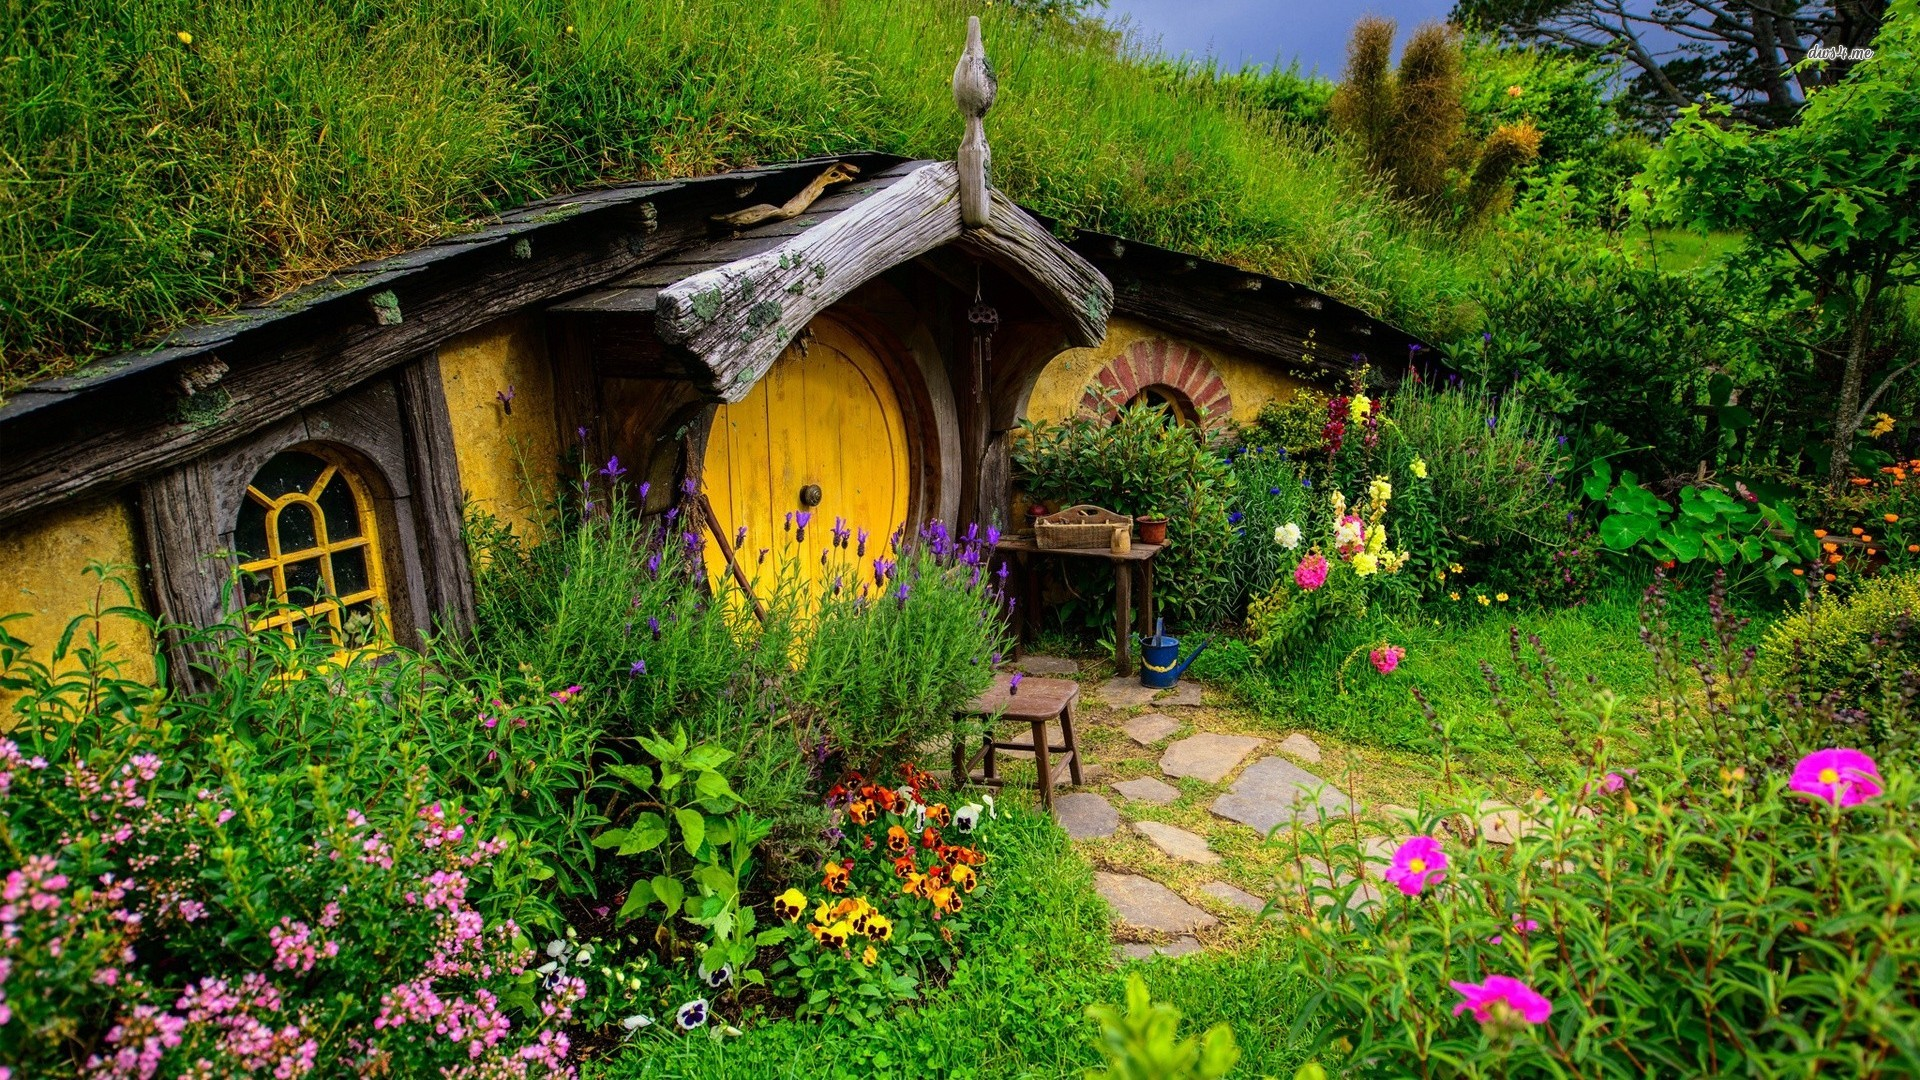 11. The Shire, The Lord of the Rings 1